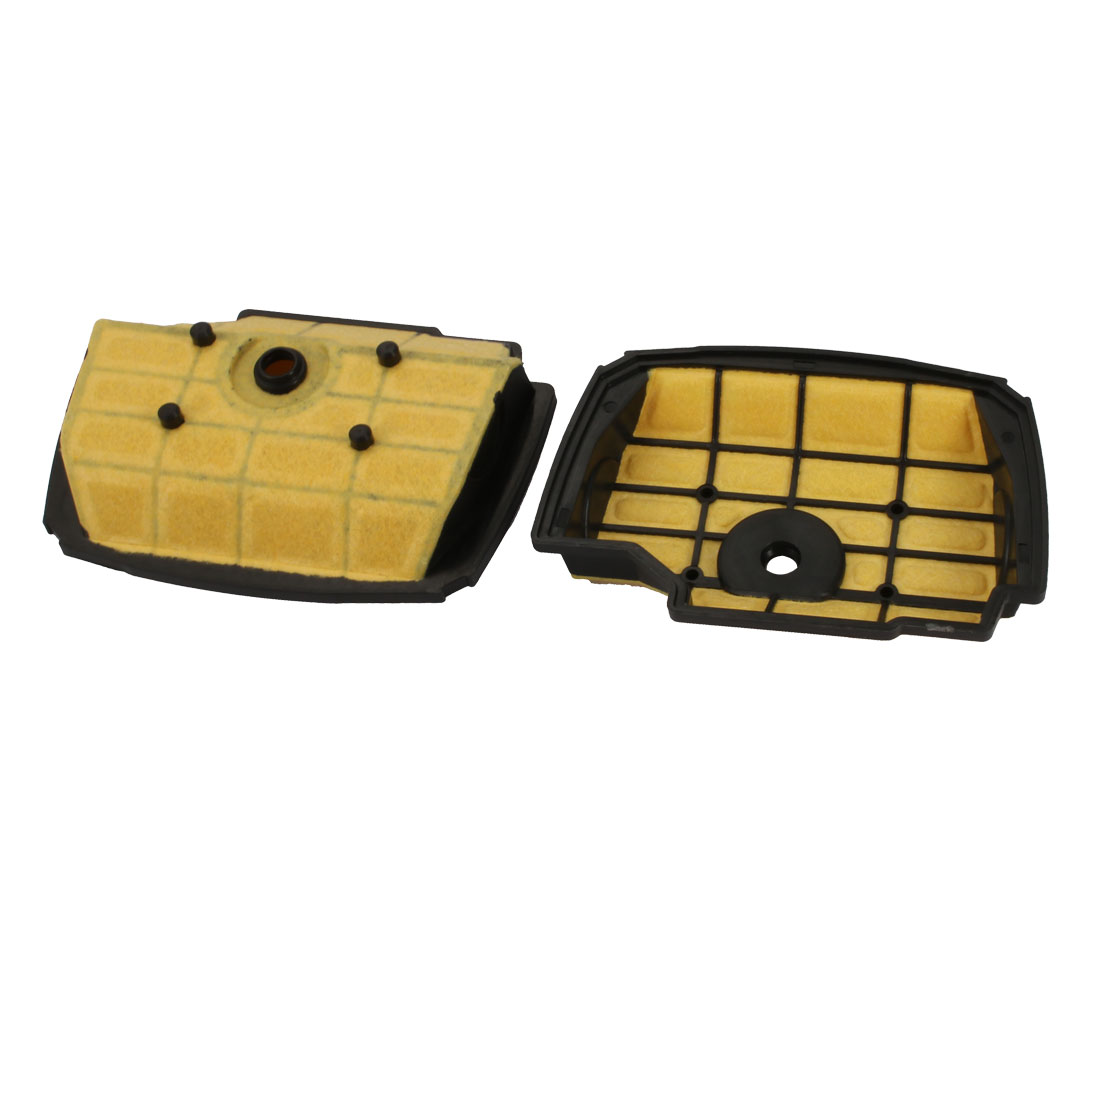 2pcs Replacement Extra Guard Panel Engine BM-S-05 Air Filter Cleaner Accessory